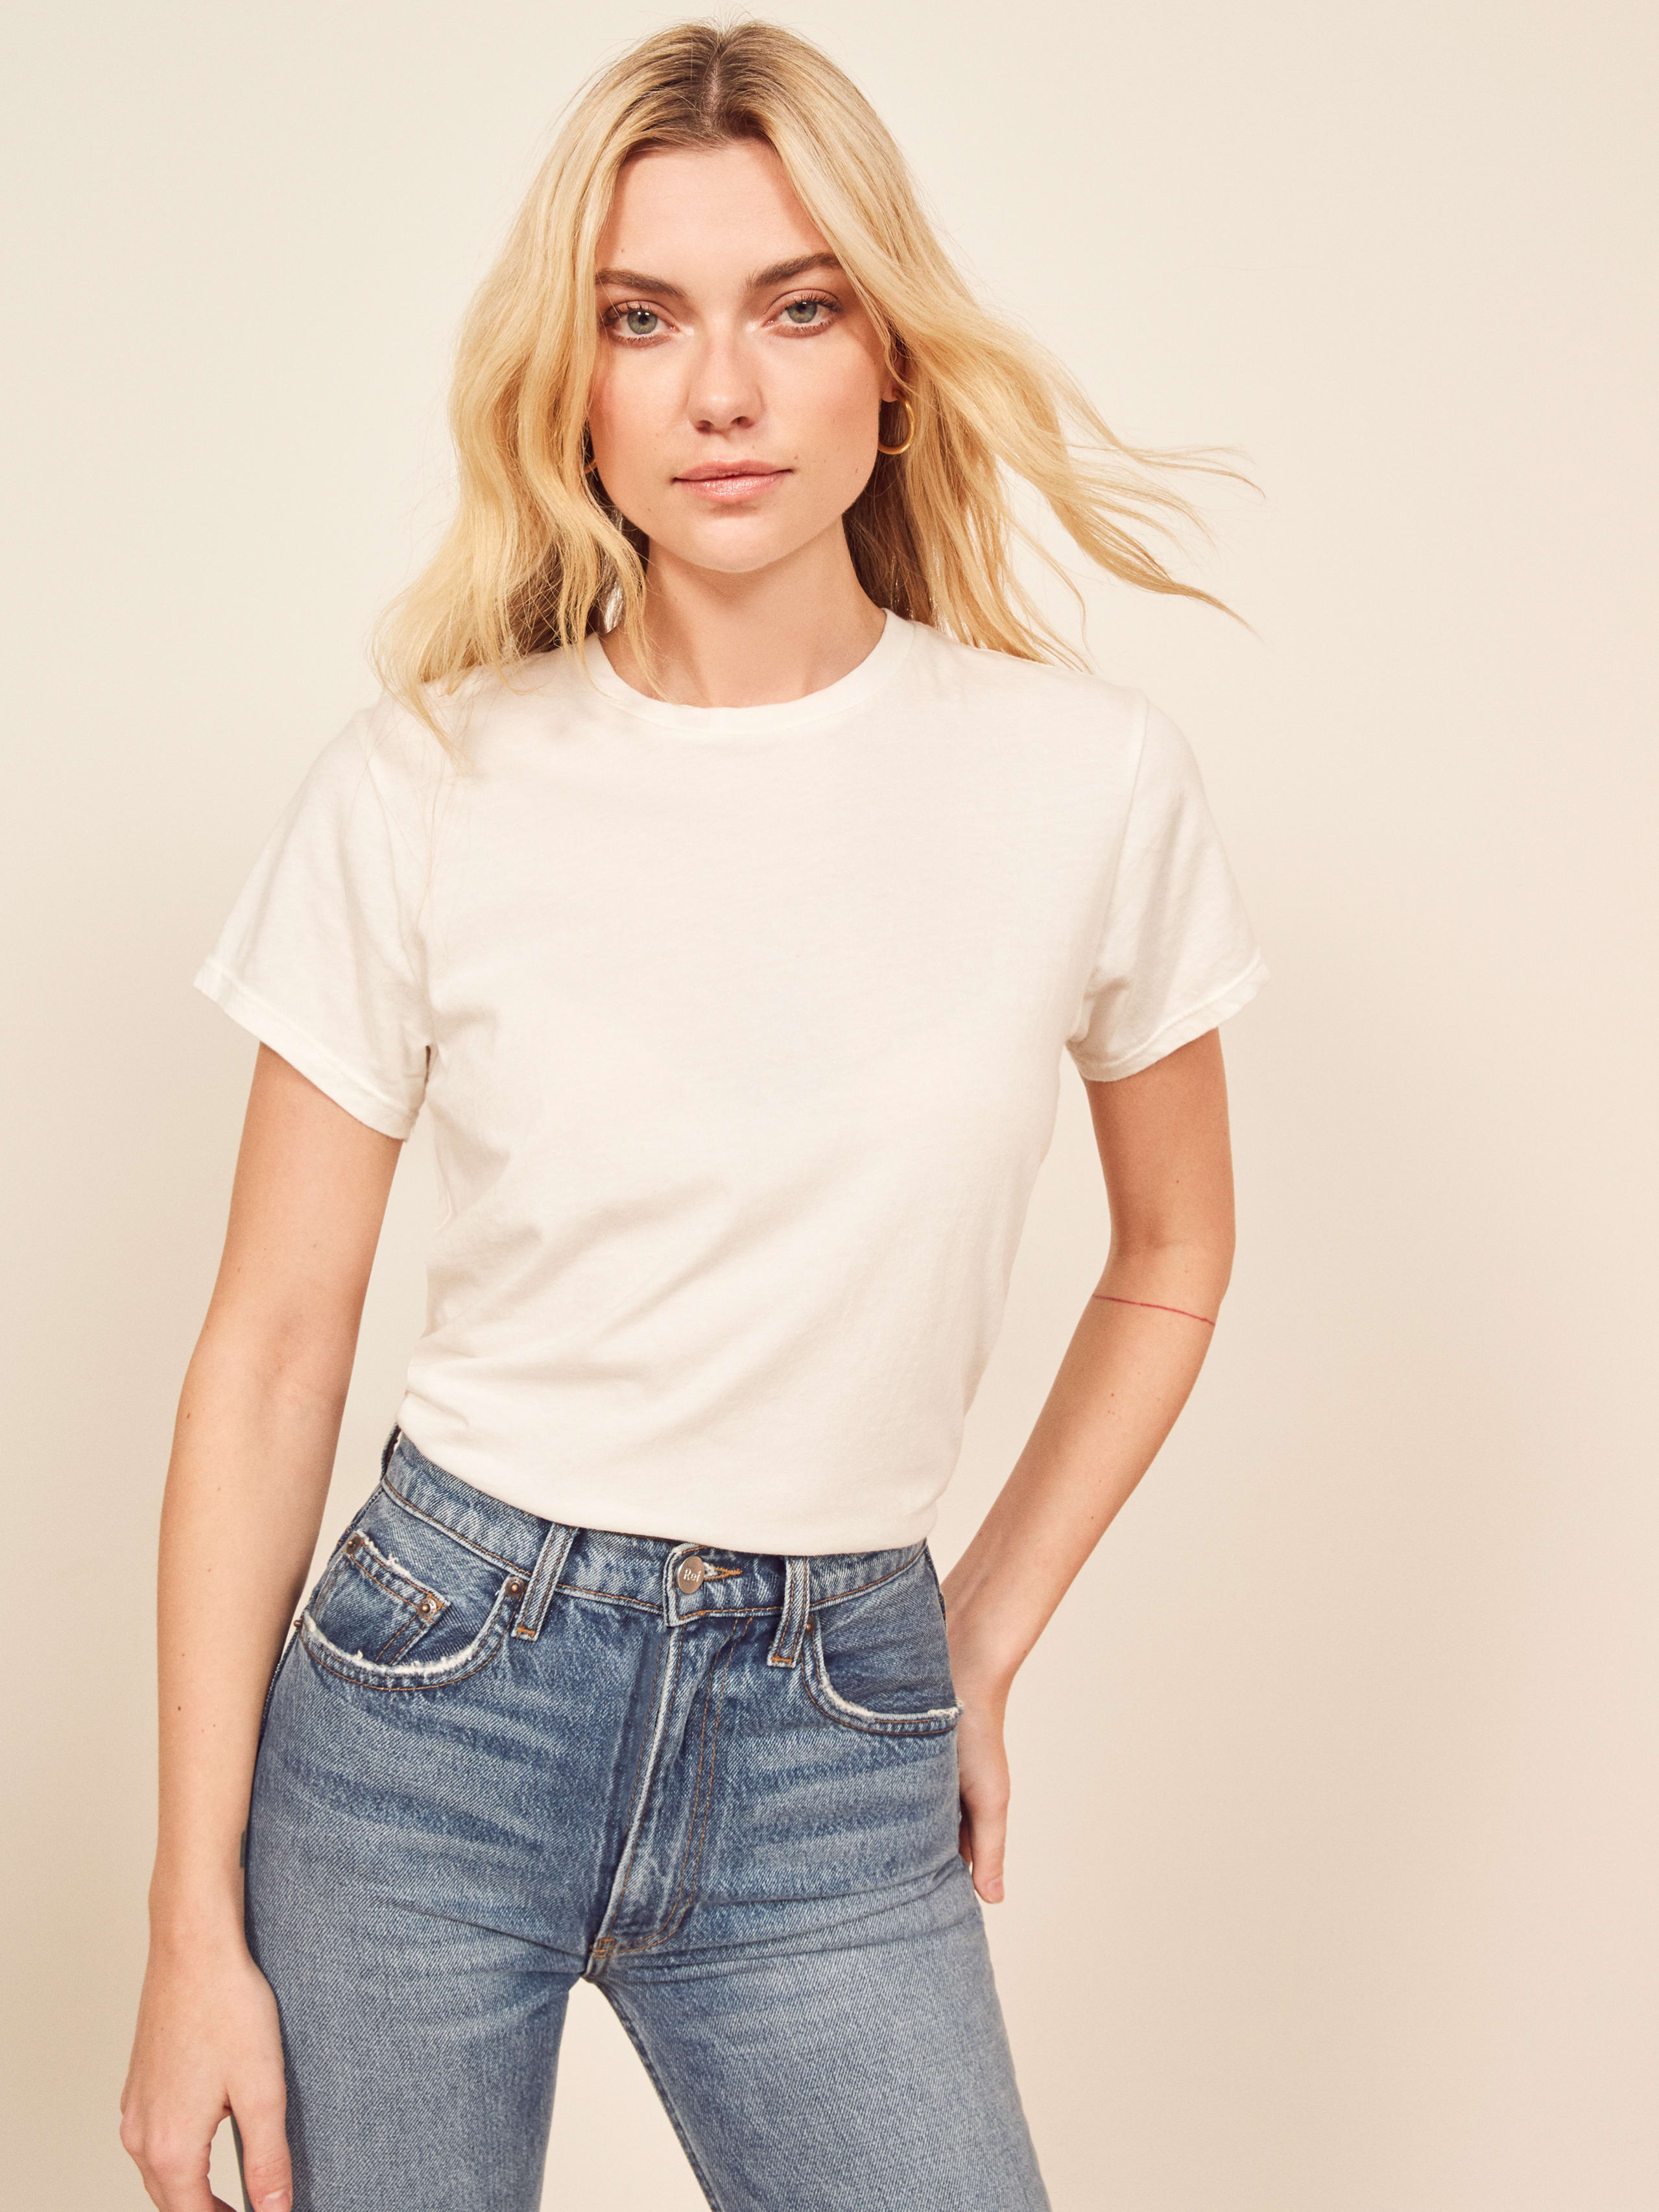 reformation-perfect-vintage-tee-white